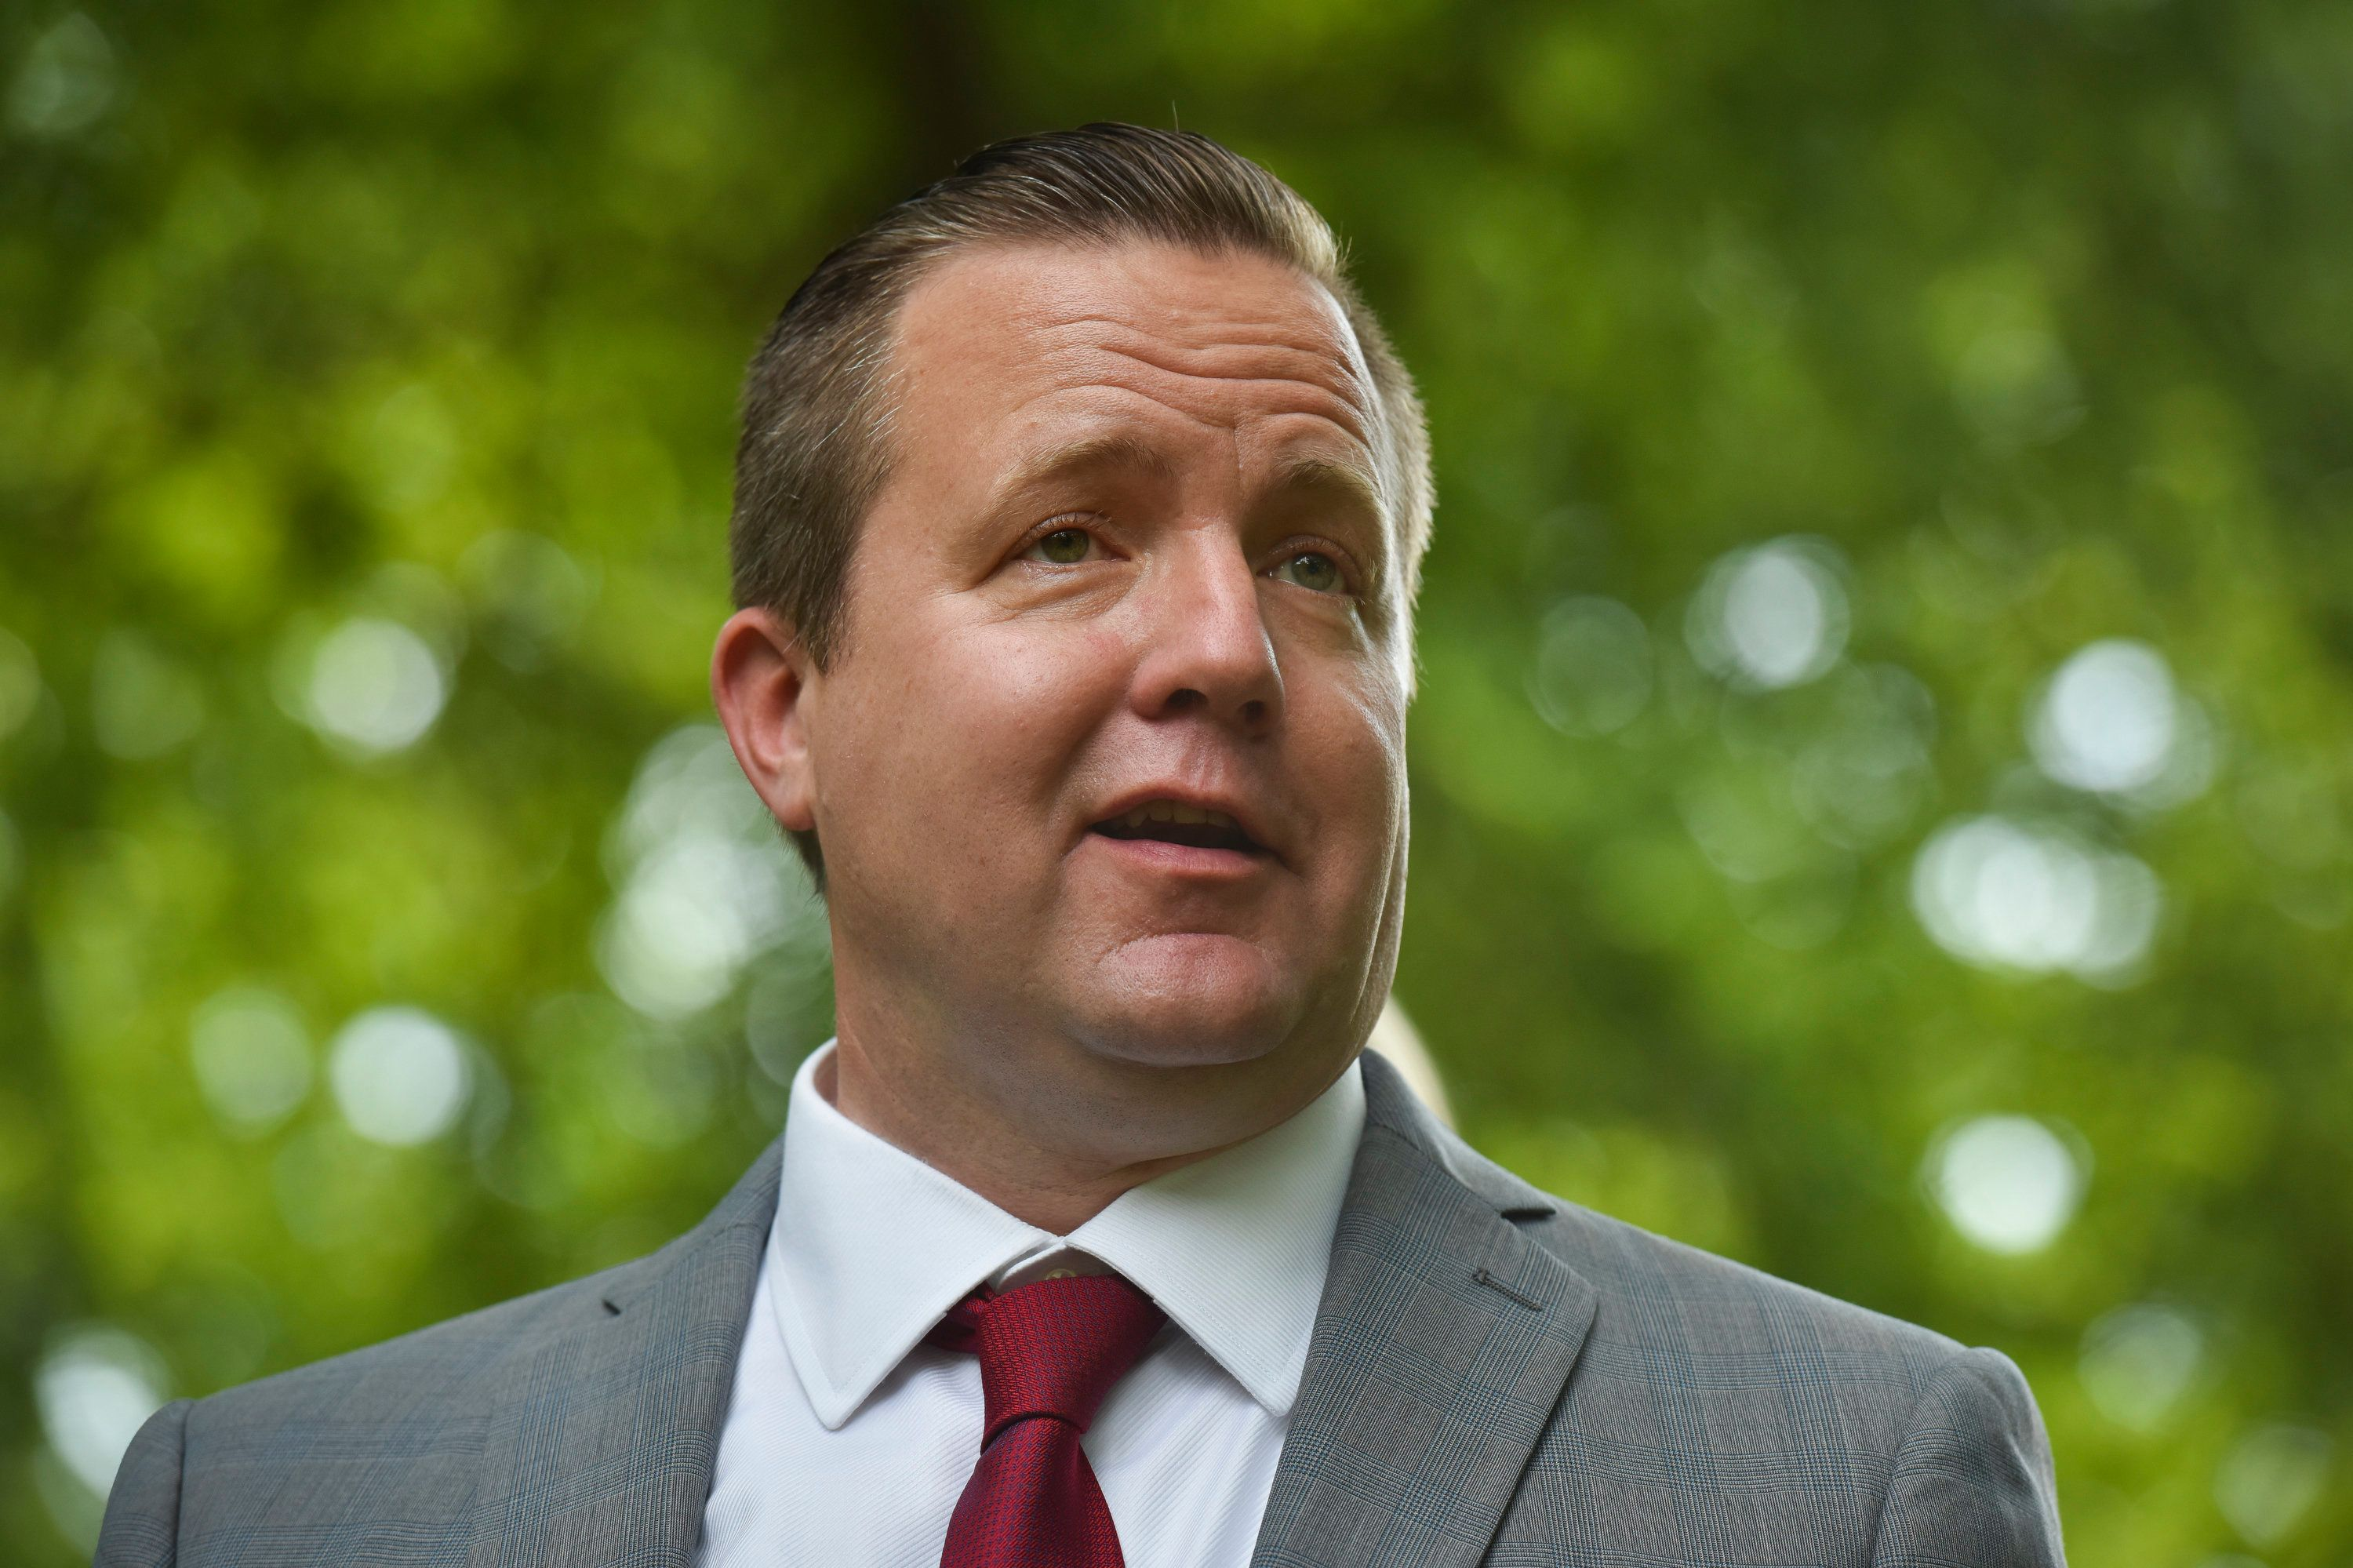 Corey Stewart has a bad attitude about Democrats